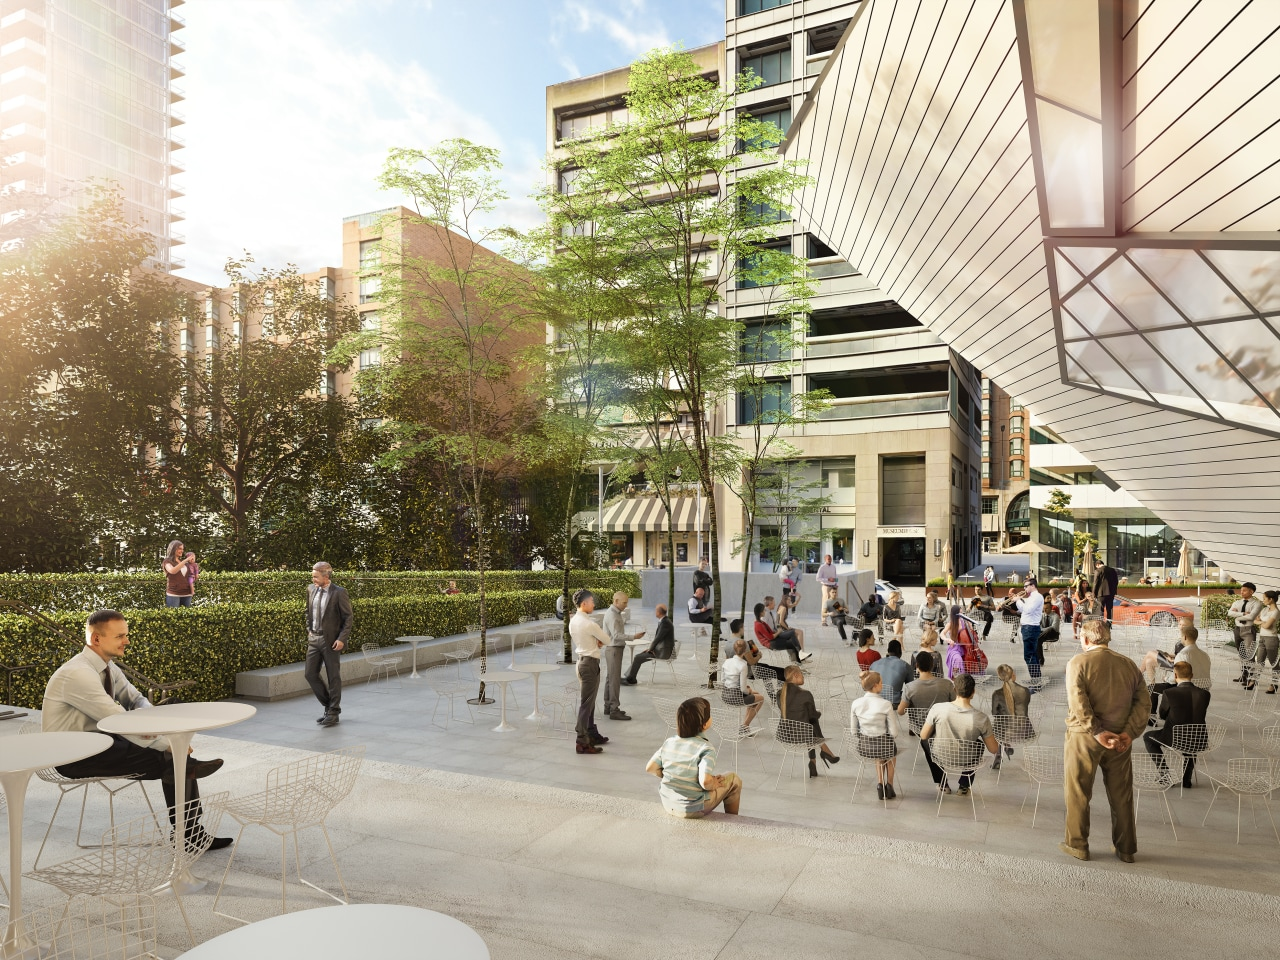 The Reed Family Plaza connects with nature and architecture, building, city, commercial building, condominium, downtown, human settlement, metropolitan area, mixed-use, pedestrian, plaza, public space, real estate, residential area, tower block, urban area, urban design, white